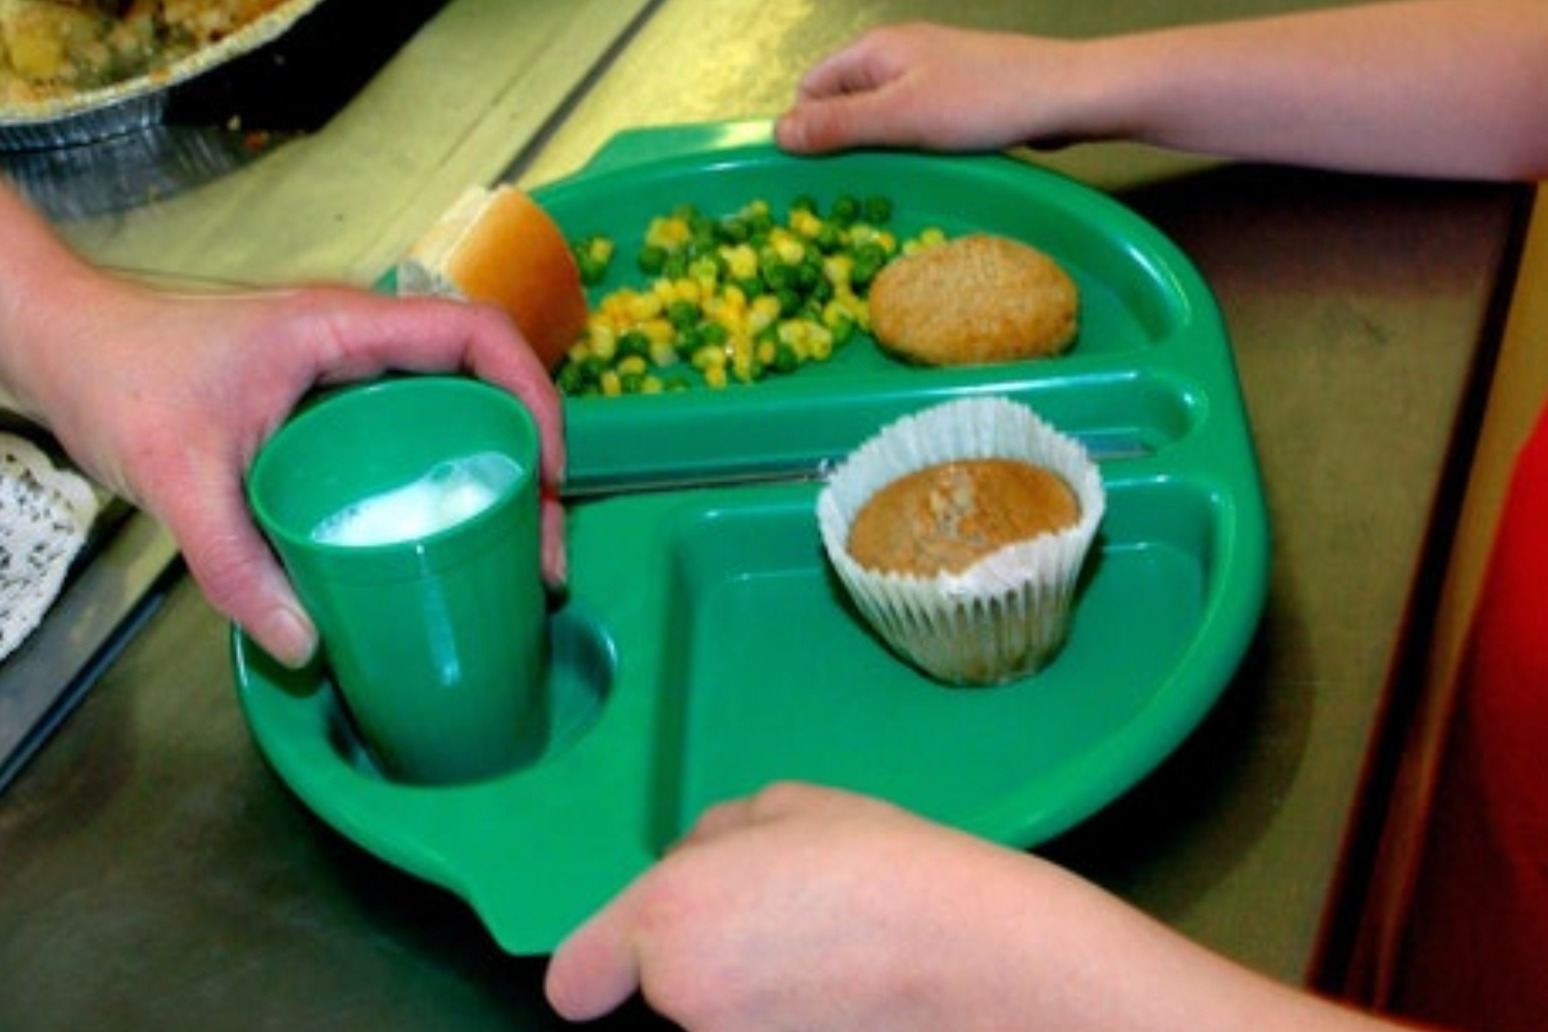 Labour to trigger vote on free school meals